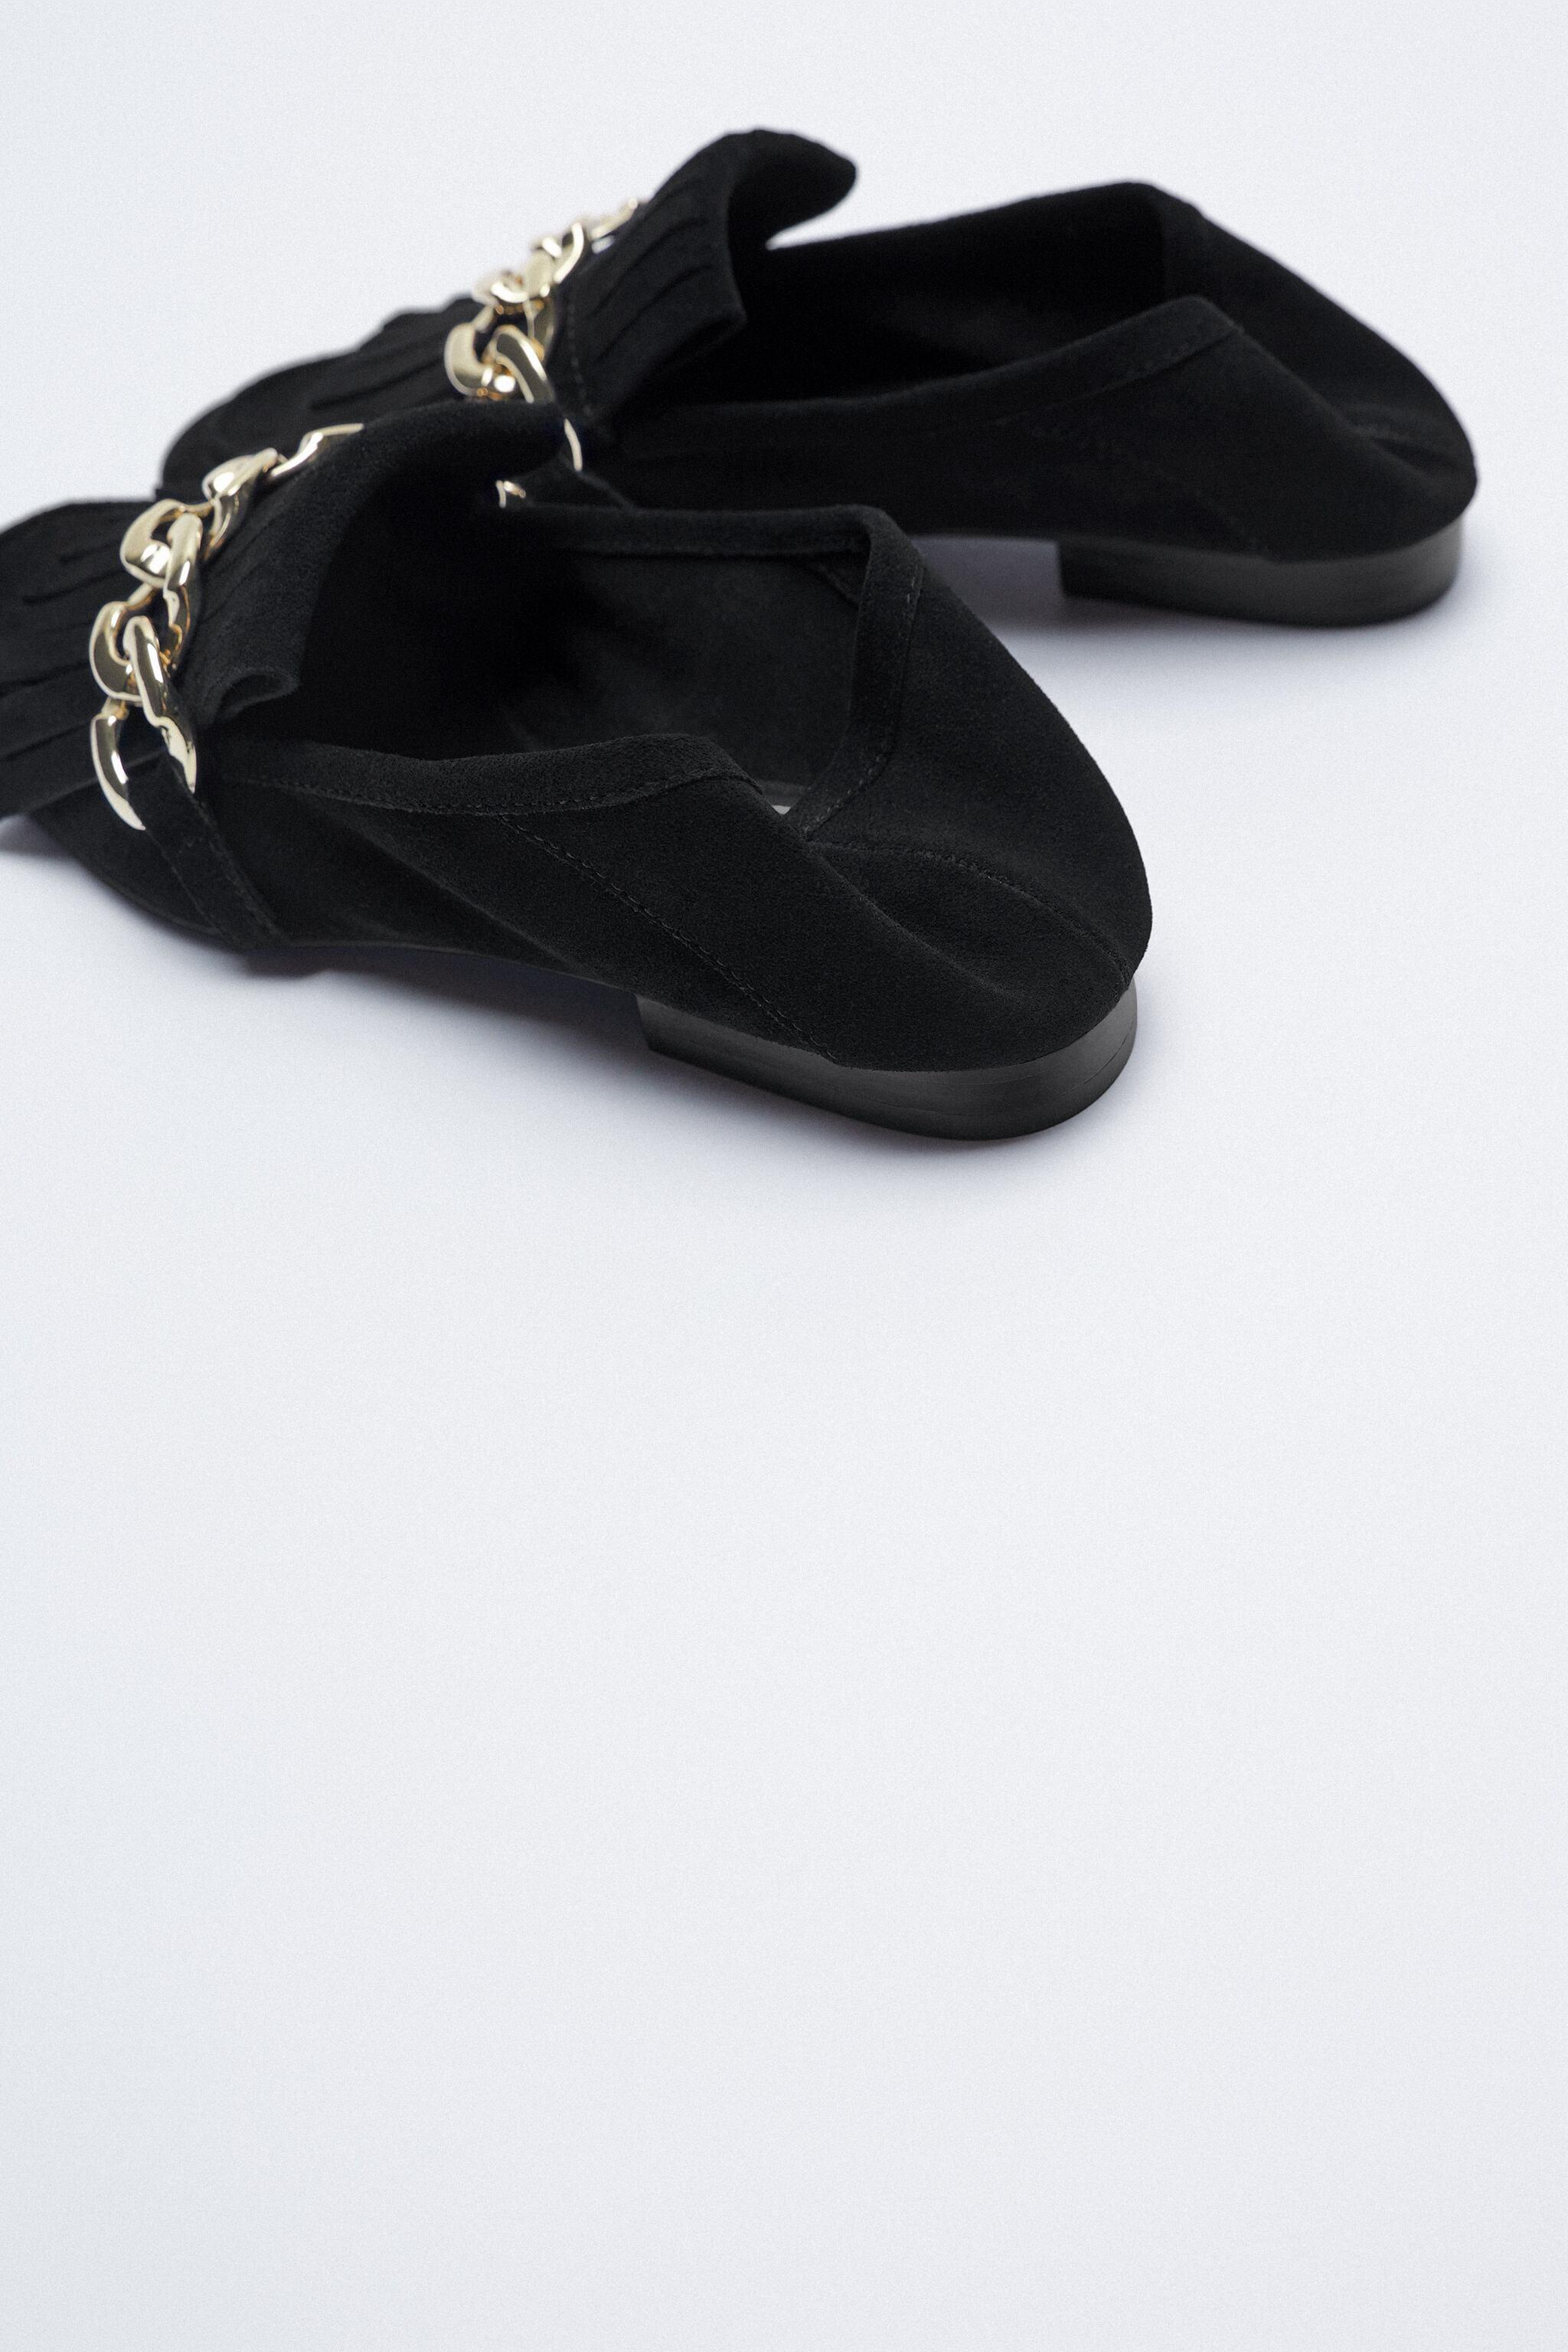 FRINGED SPLIT LEATHER MOCCASINS WITH CHAIN 9